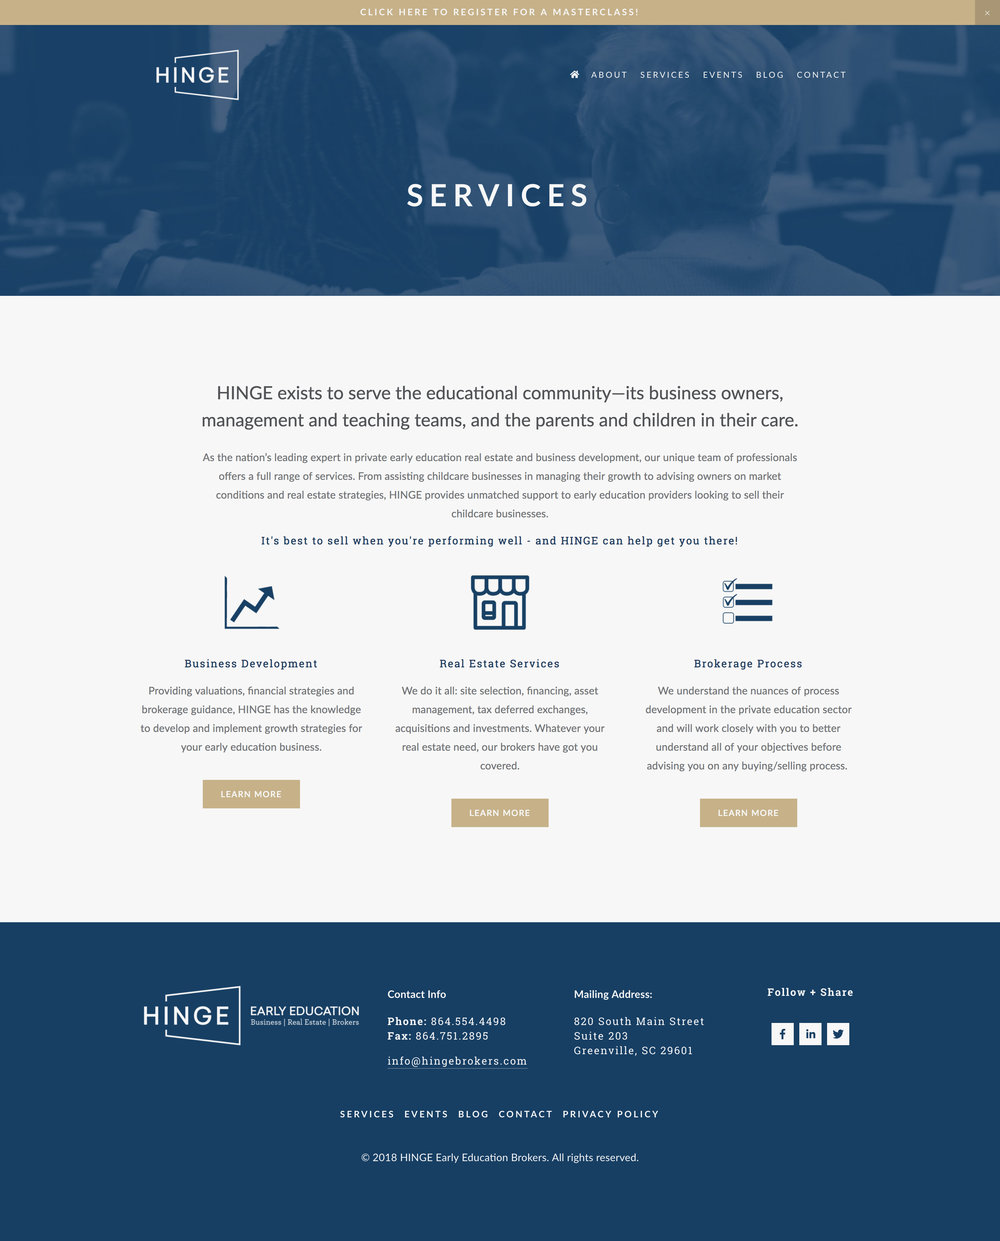 Hinge-Brokers-Services-Air.jpg